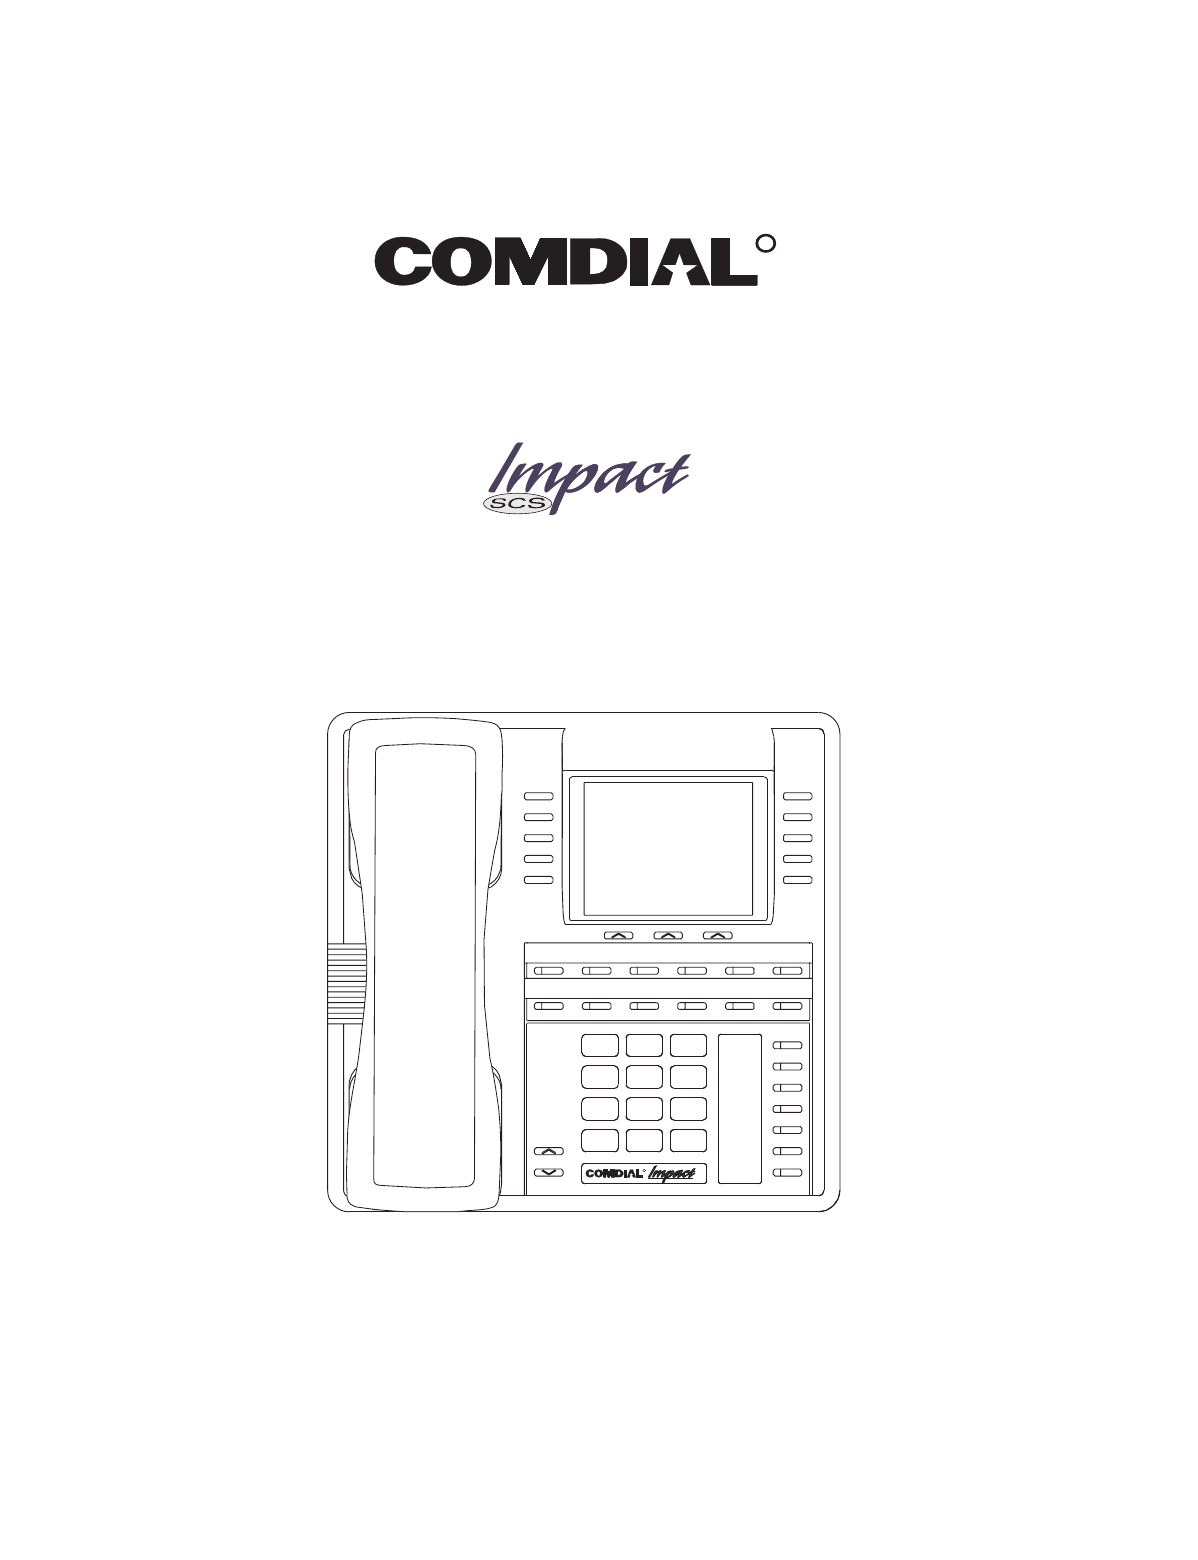 vertical communications telephone 8412f user guide